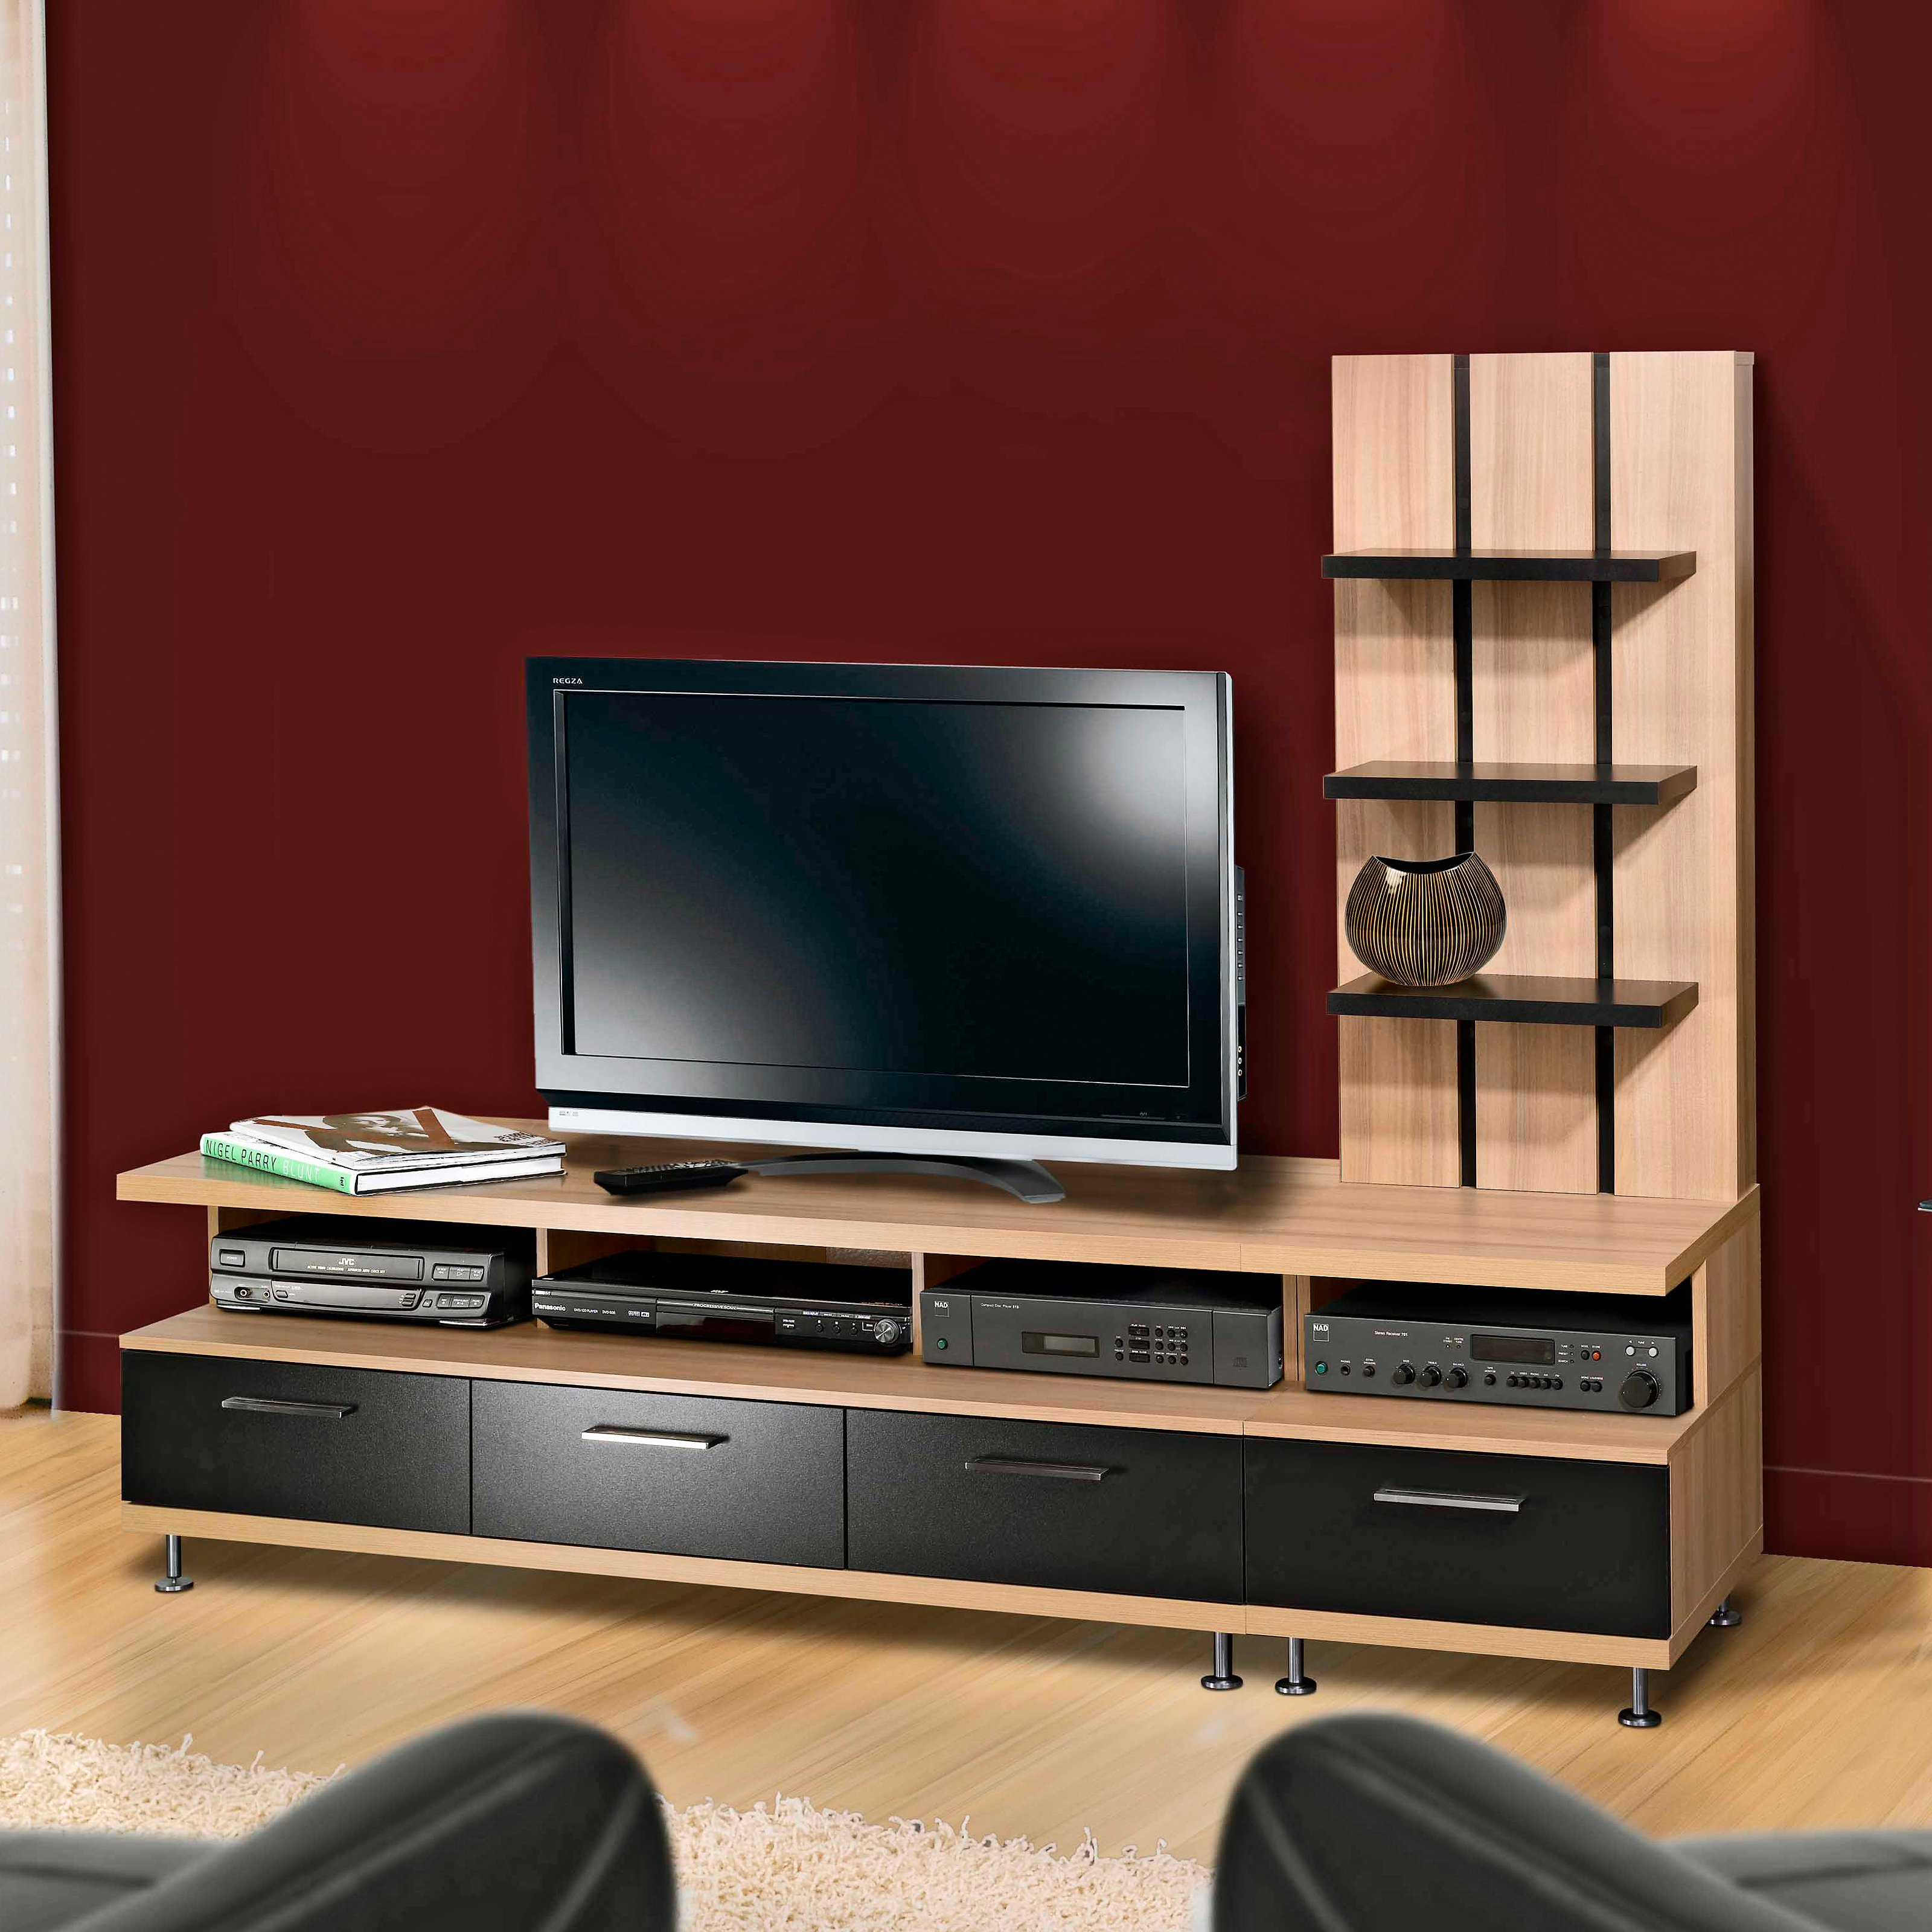 Best Contemporary Tv Console For Flat Screens — All Contemporary Design Intended For Famous Contemporary Tv Cabinets For Flat Screens (View 2 of 20)